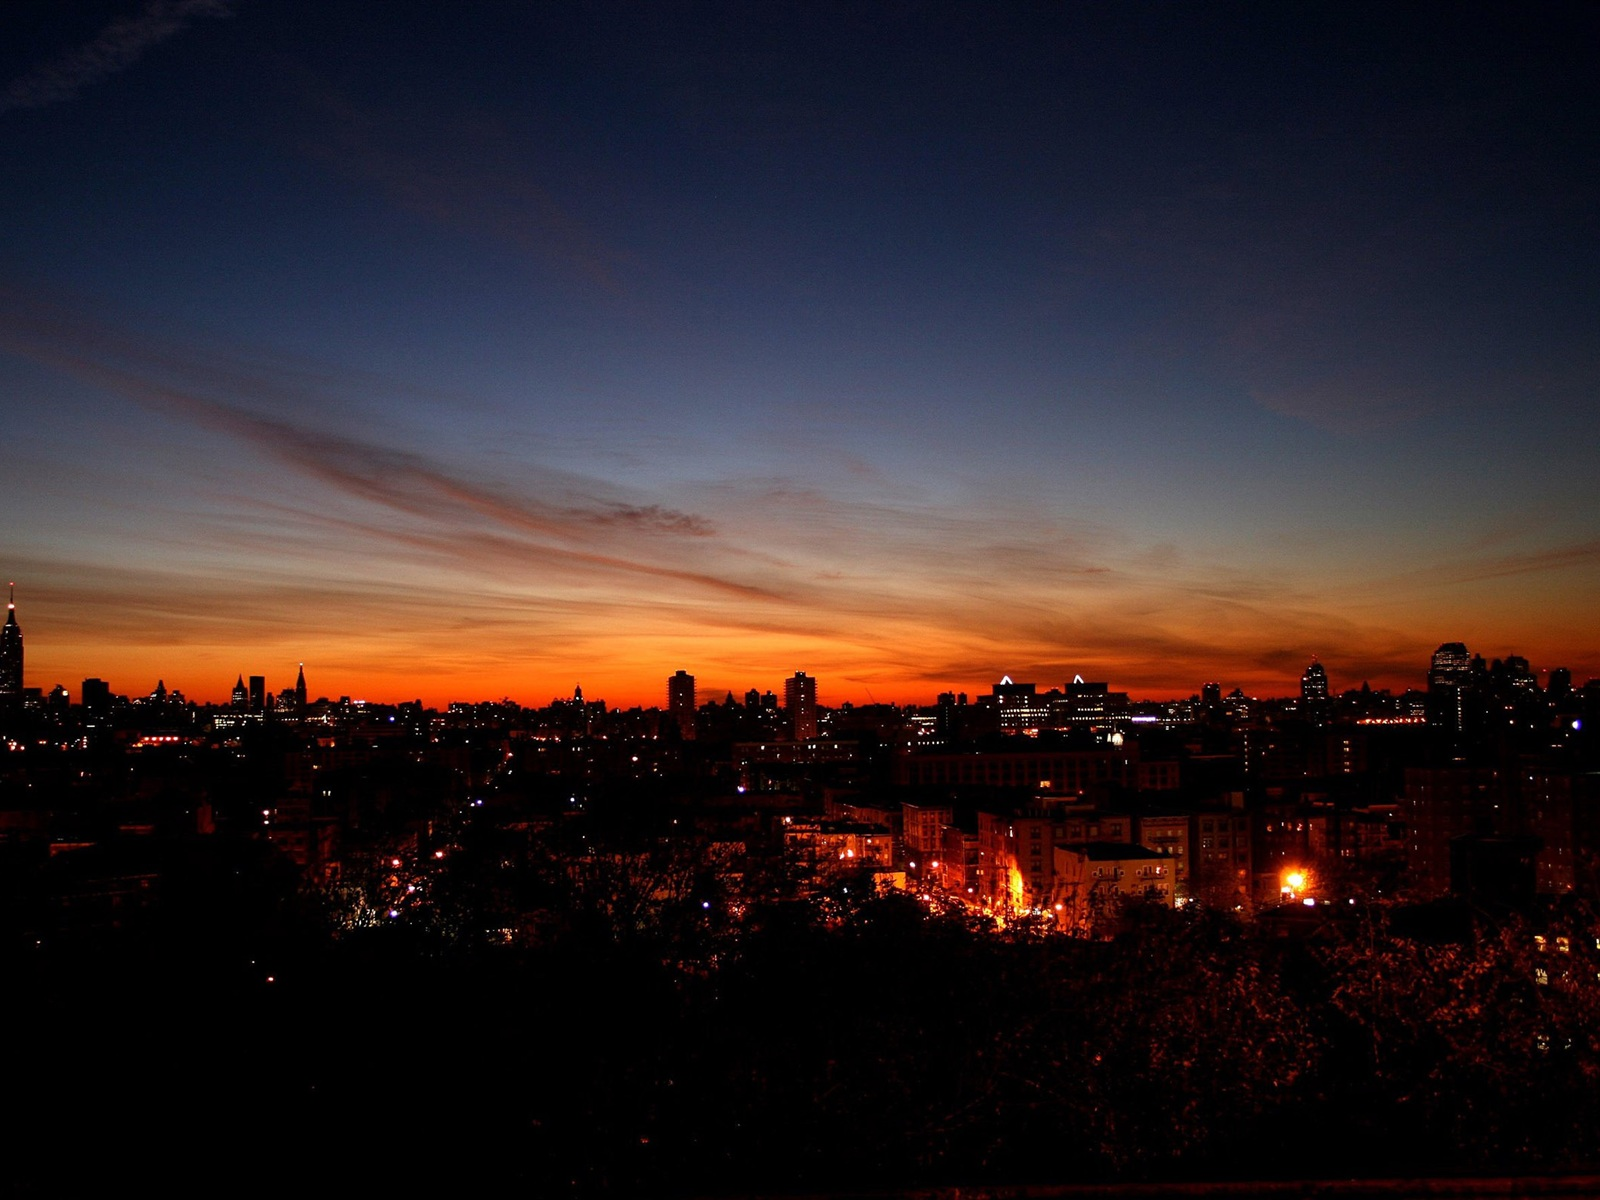 Wallpaper Night City Sky 2560x1600 Hd Picture Image